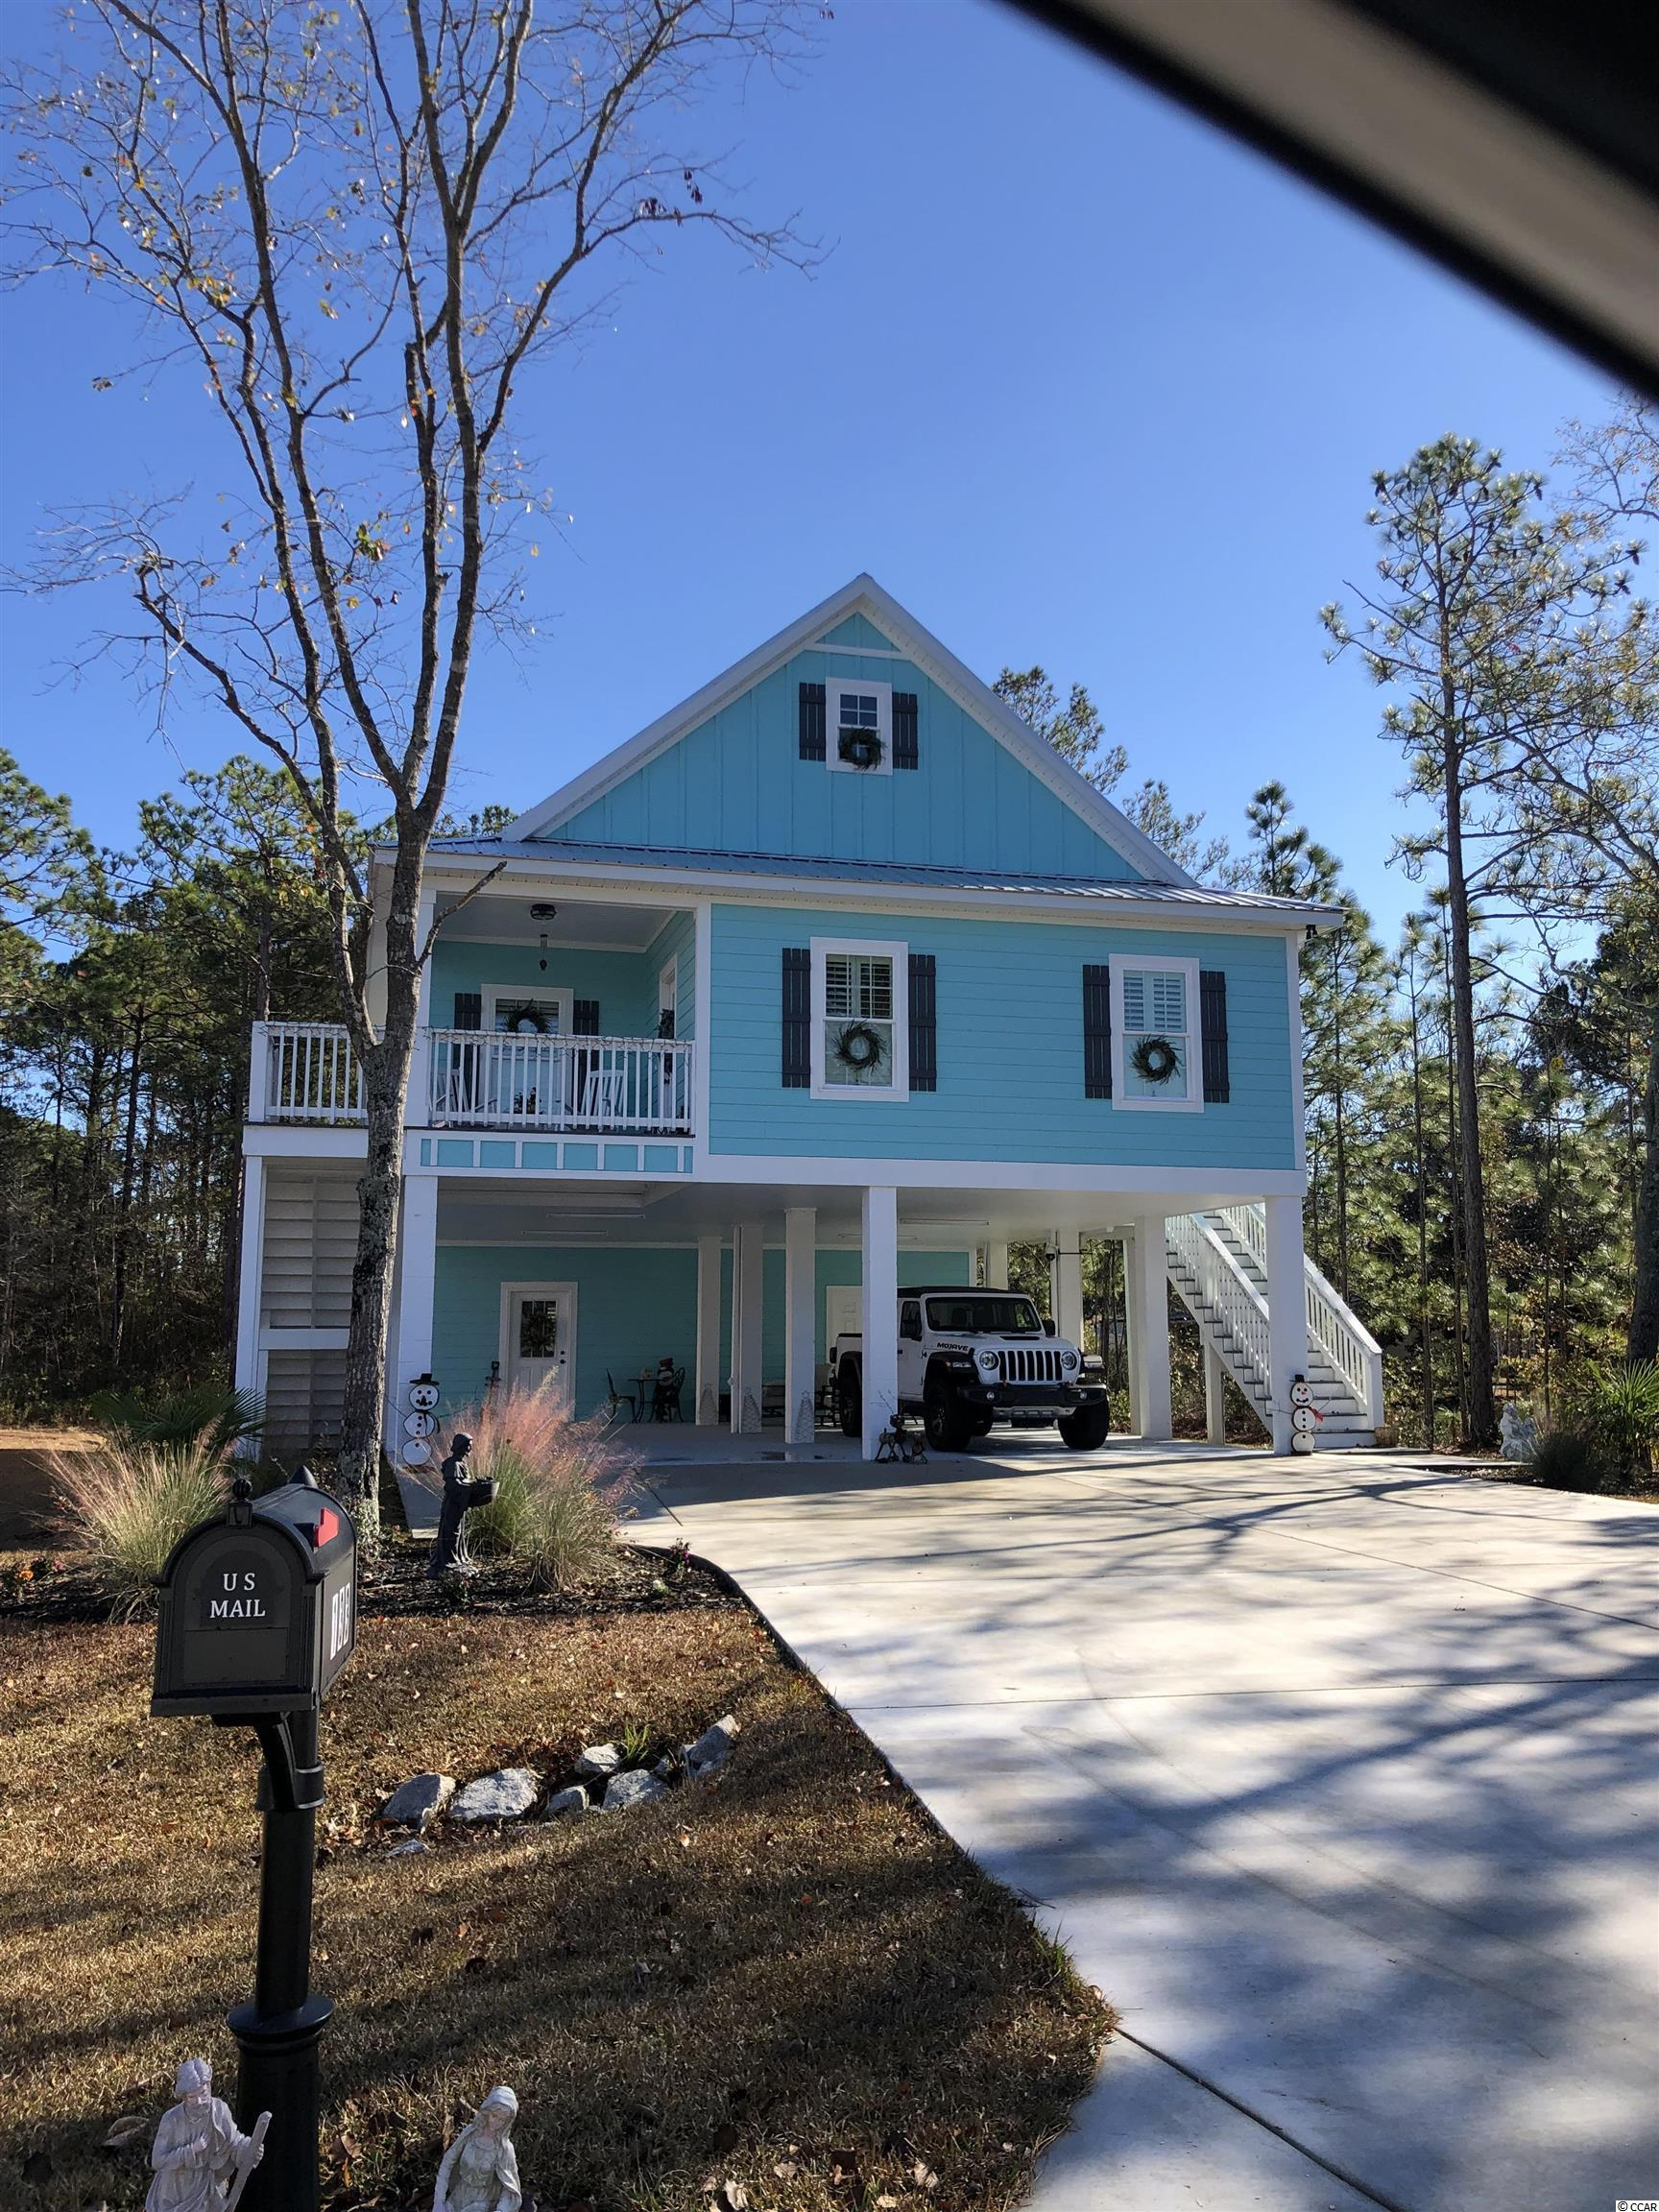 Under construction!! A beautiful 4 bedroom 3 bath raised beach home located right off of the Garden City Connector. Don't pay expensive HOA fees. This home has no HOA!! Take a short golf cart ride to the popular beaches, shopping, and dining. This home will feature a covered  porch, 9' foot ceilings, hardie plank siding, a metal roof, and a tankless water heater. The kitchen will have custom built cabinetry, stainless steel appliances, and granite countertops. Downstairs you will find a storage room and a 4th bedroom you could convert into a mancave, flex room, or an in law suite with its own full bathroom and closet. Don't miss out and come take a look today!!